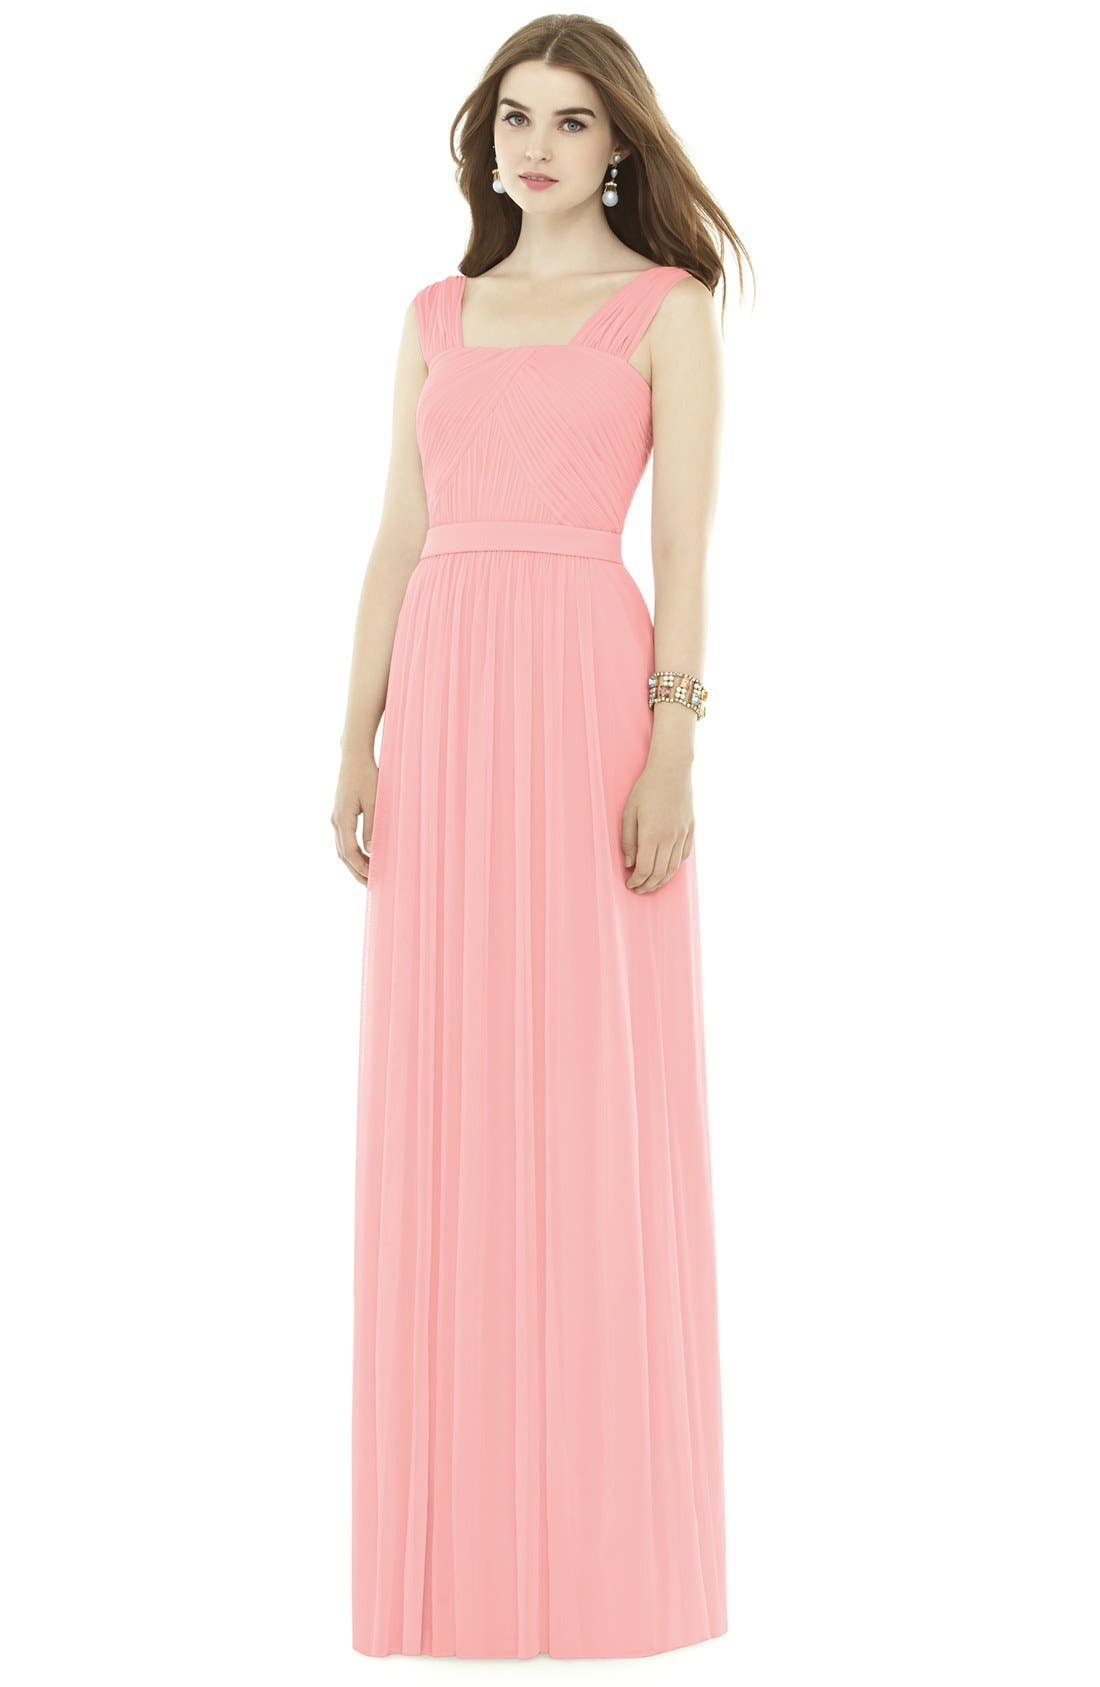 Pleat Chiffon Knit A-Line Gown with Belt,                             Main thumbnail 1, color,                             Apricot